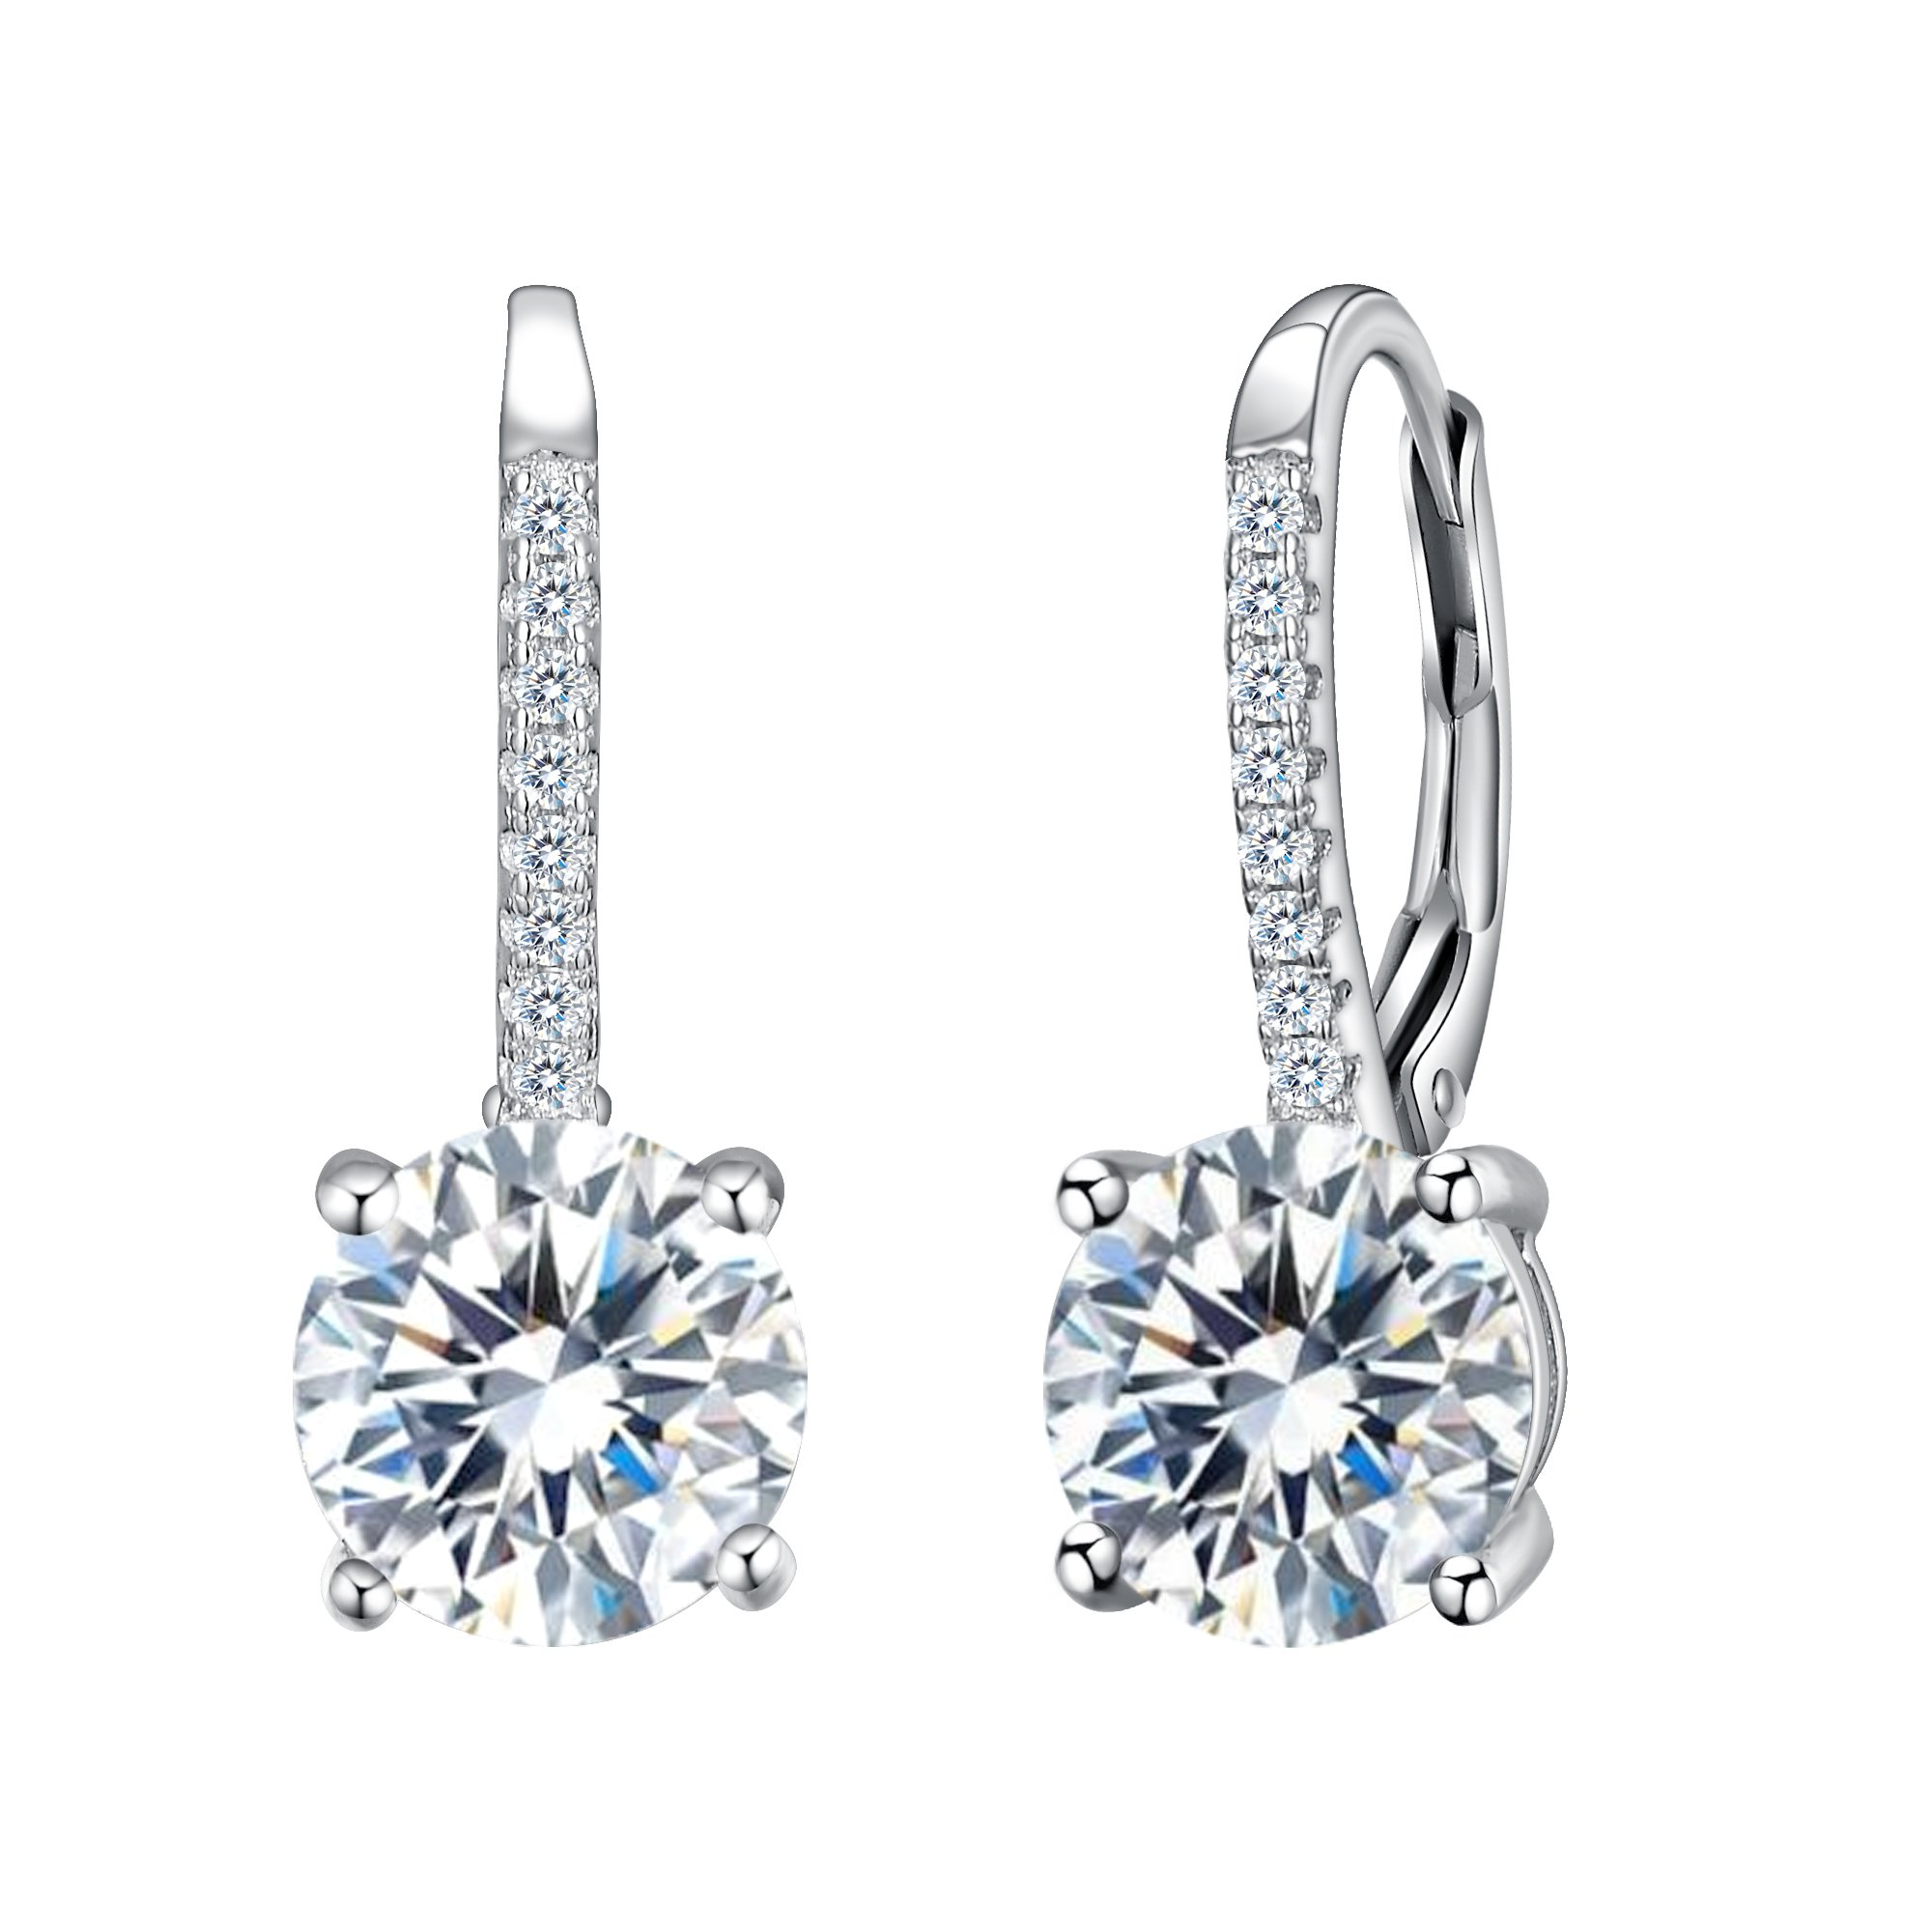 d85c8f523 EVER FAITH 925 Sterling Silver Round Cut CZ Prong Setting Gorgeous Bridal  Prom Leverback Dangle Earrings